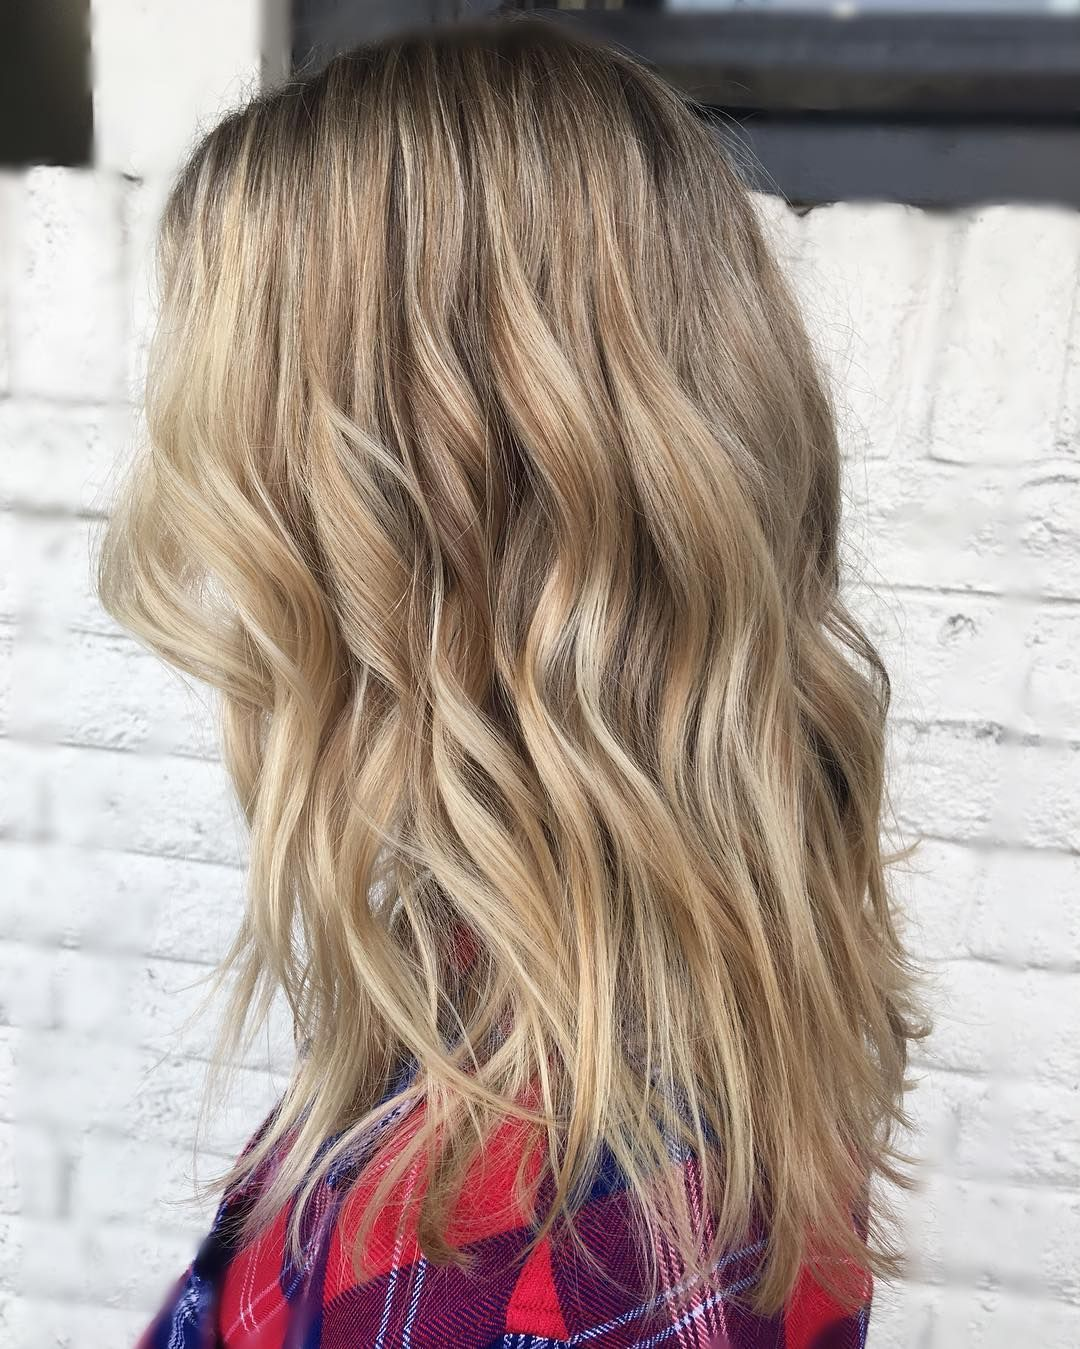 beach wave perm hairstyles can look extremely classy and stylish